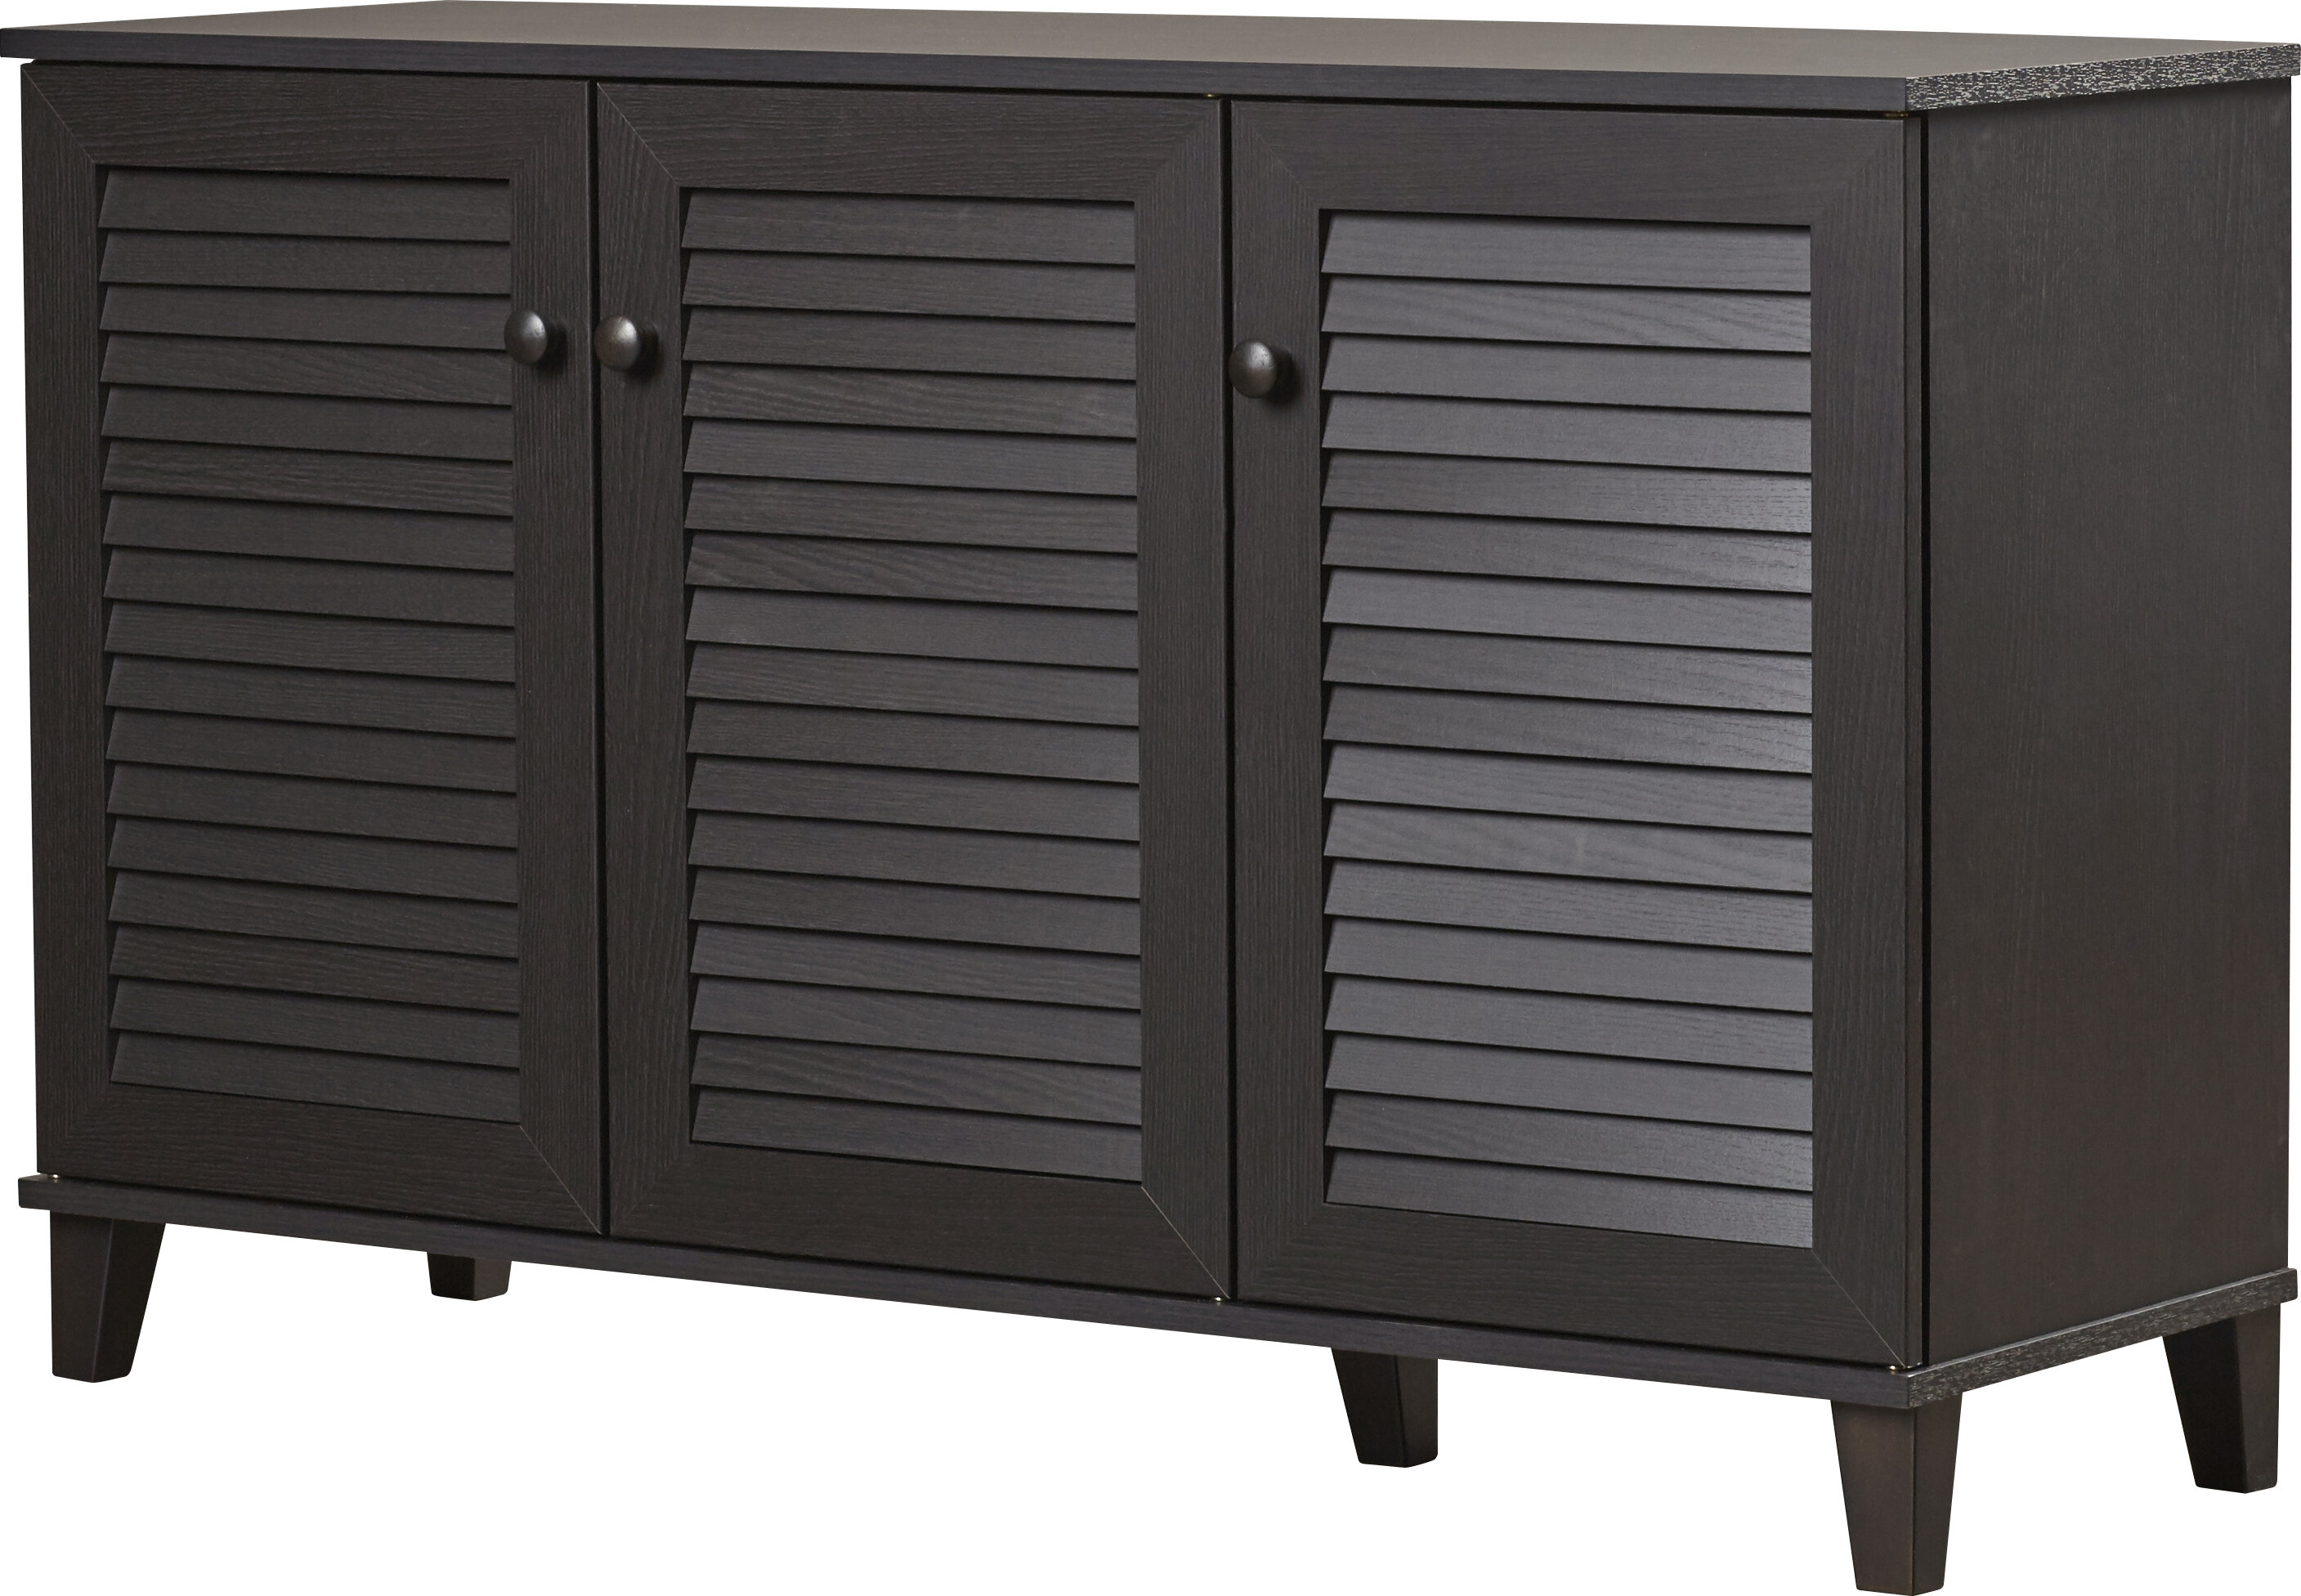 Delicieux Rebrilliant 25 Pair Shoe Storage Cabinet U0026 Reviews | Wayfair